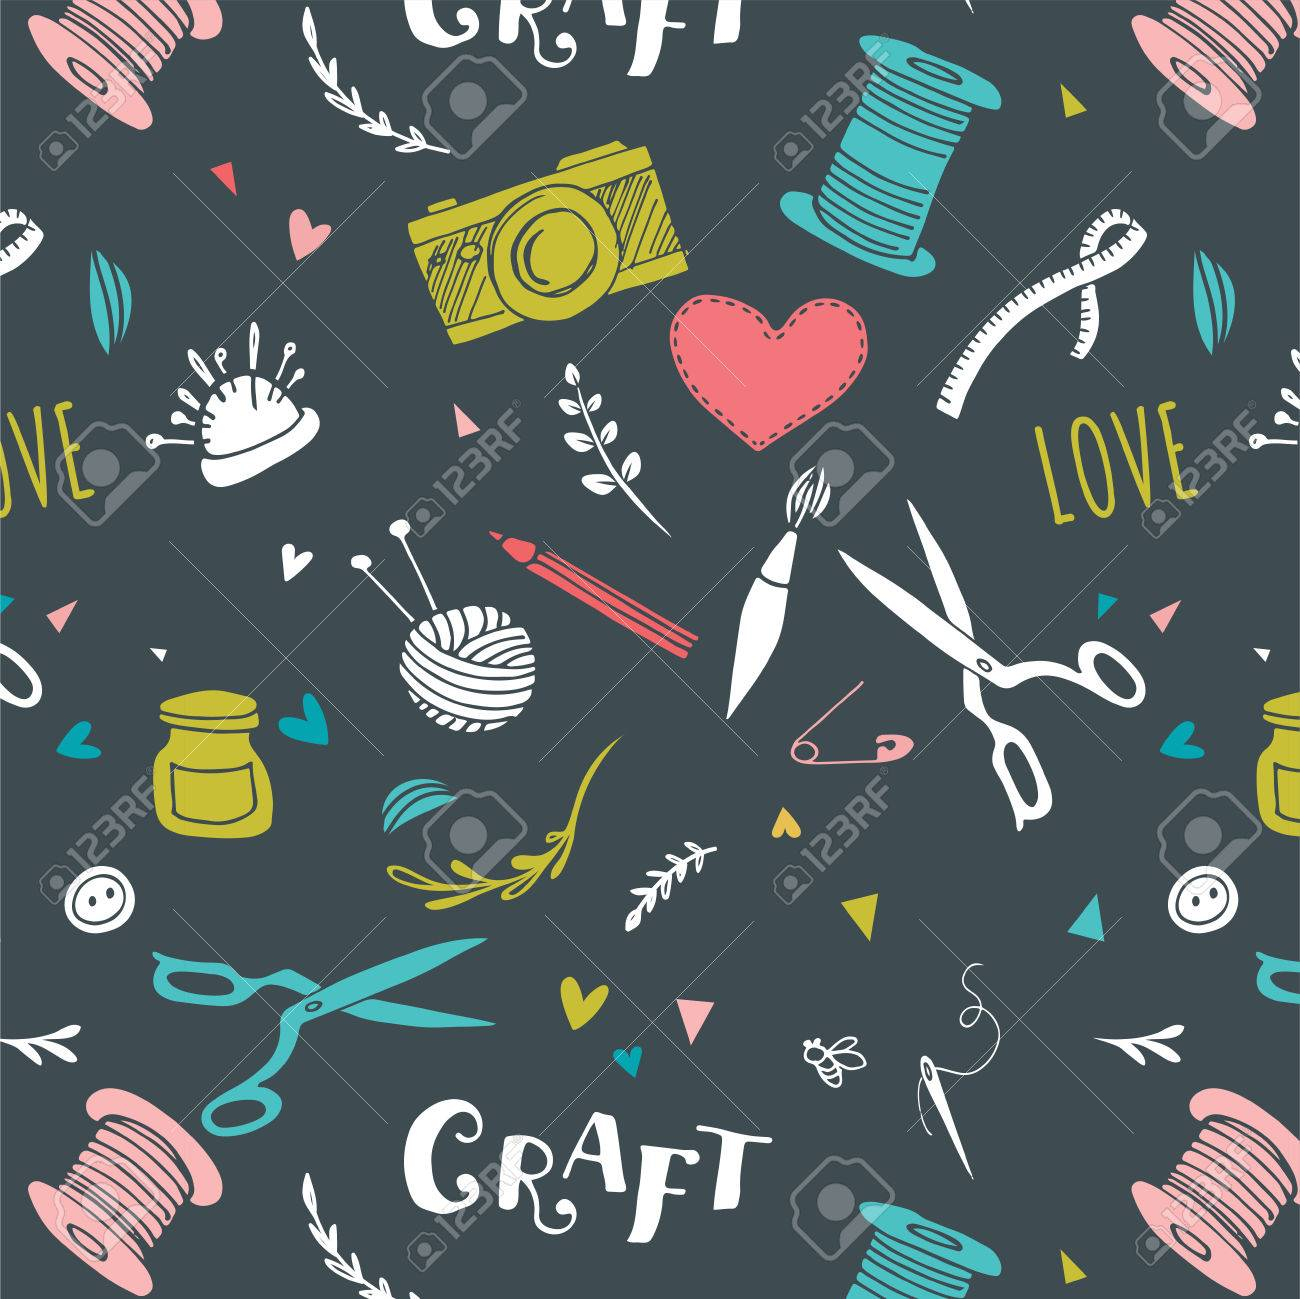 Free Download Handmade Crafts Patterns And Vector Hand Drawn Background Royalty 1300x1299 For Your Desktop Mobile Tablet Explore 31 Crafts Backgrounds Crafts Wallpaper Wallpaper Crafts Pinterest Wallpaper Crafts